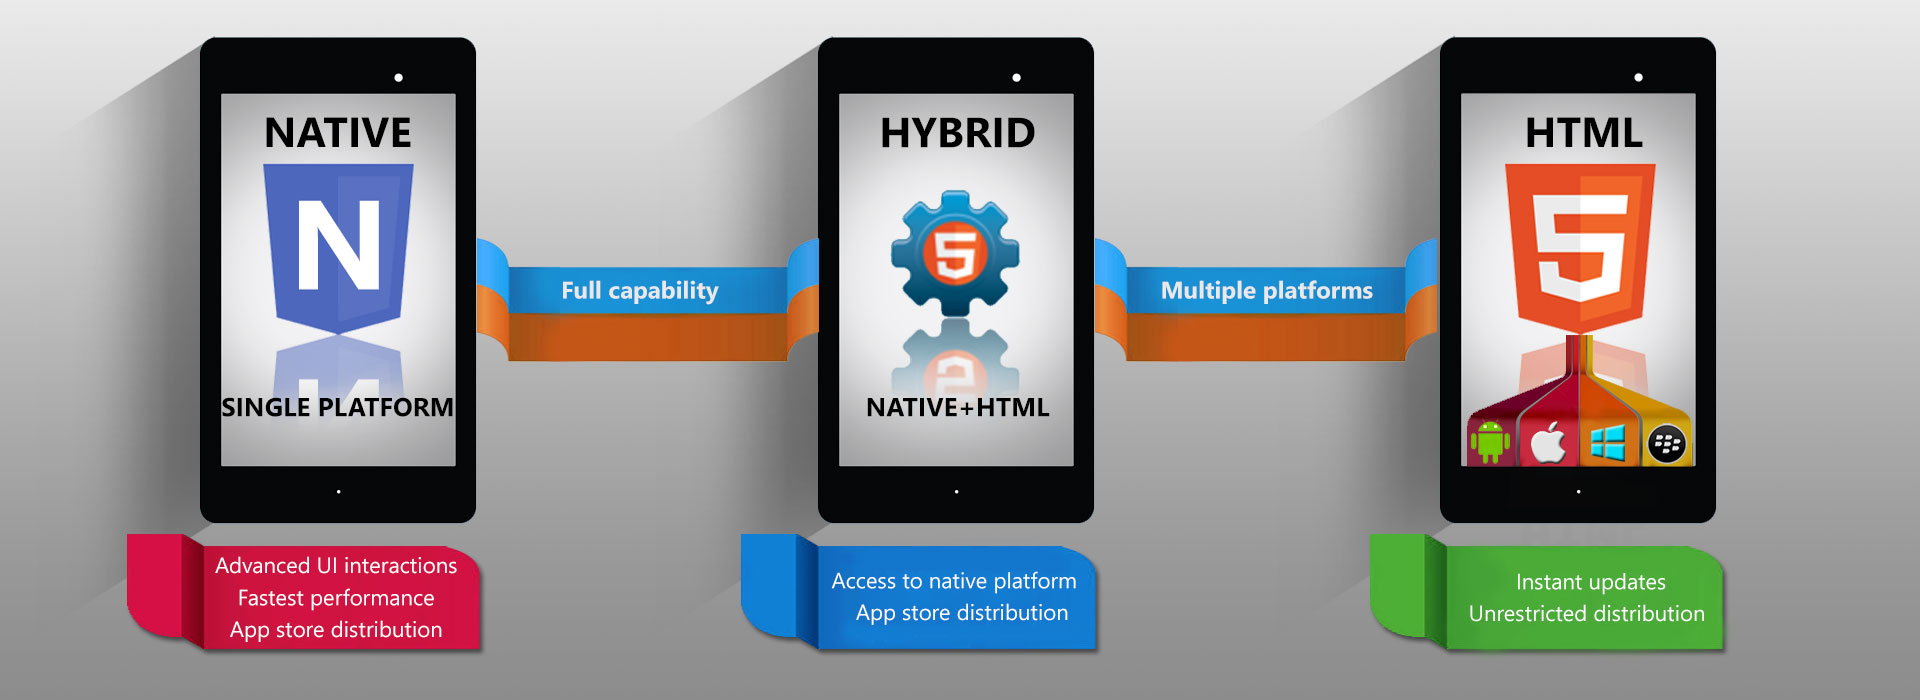 Which is the best technology for mobile app development